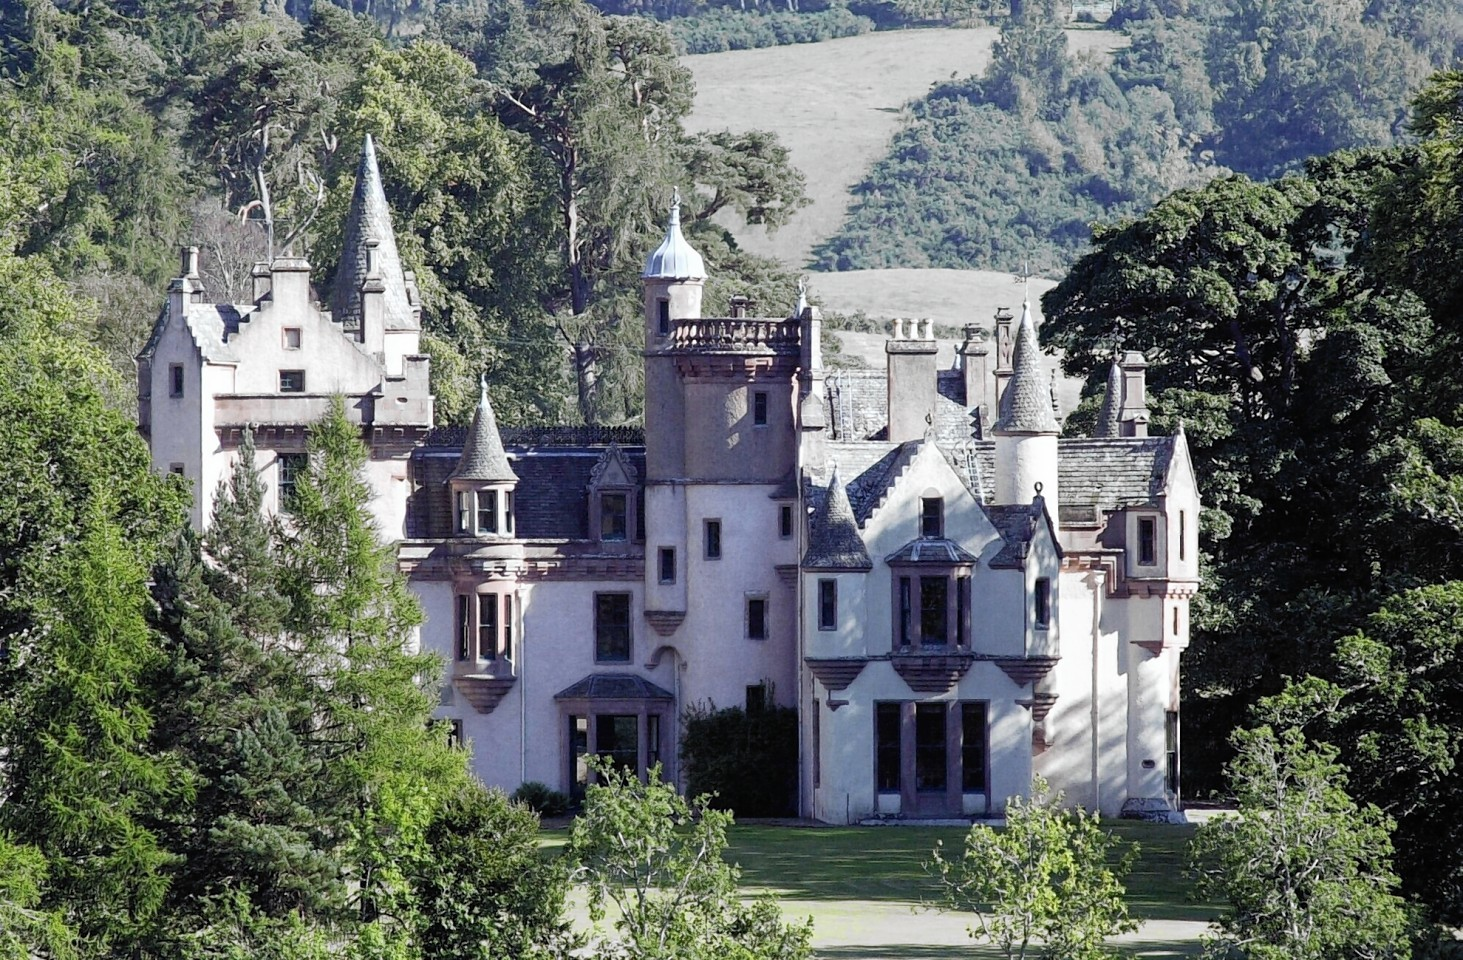 Aldourie Castle at Loch Ness